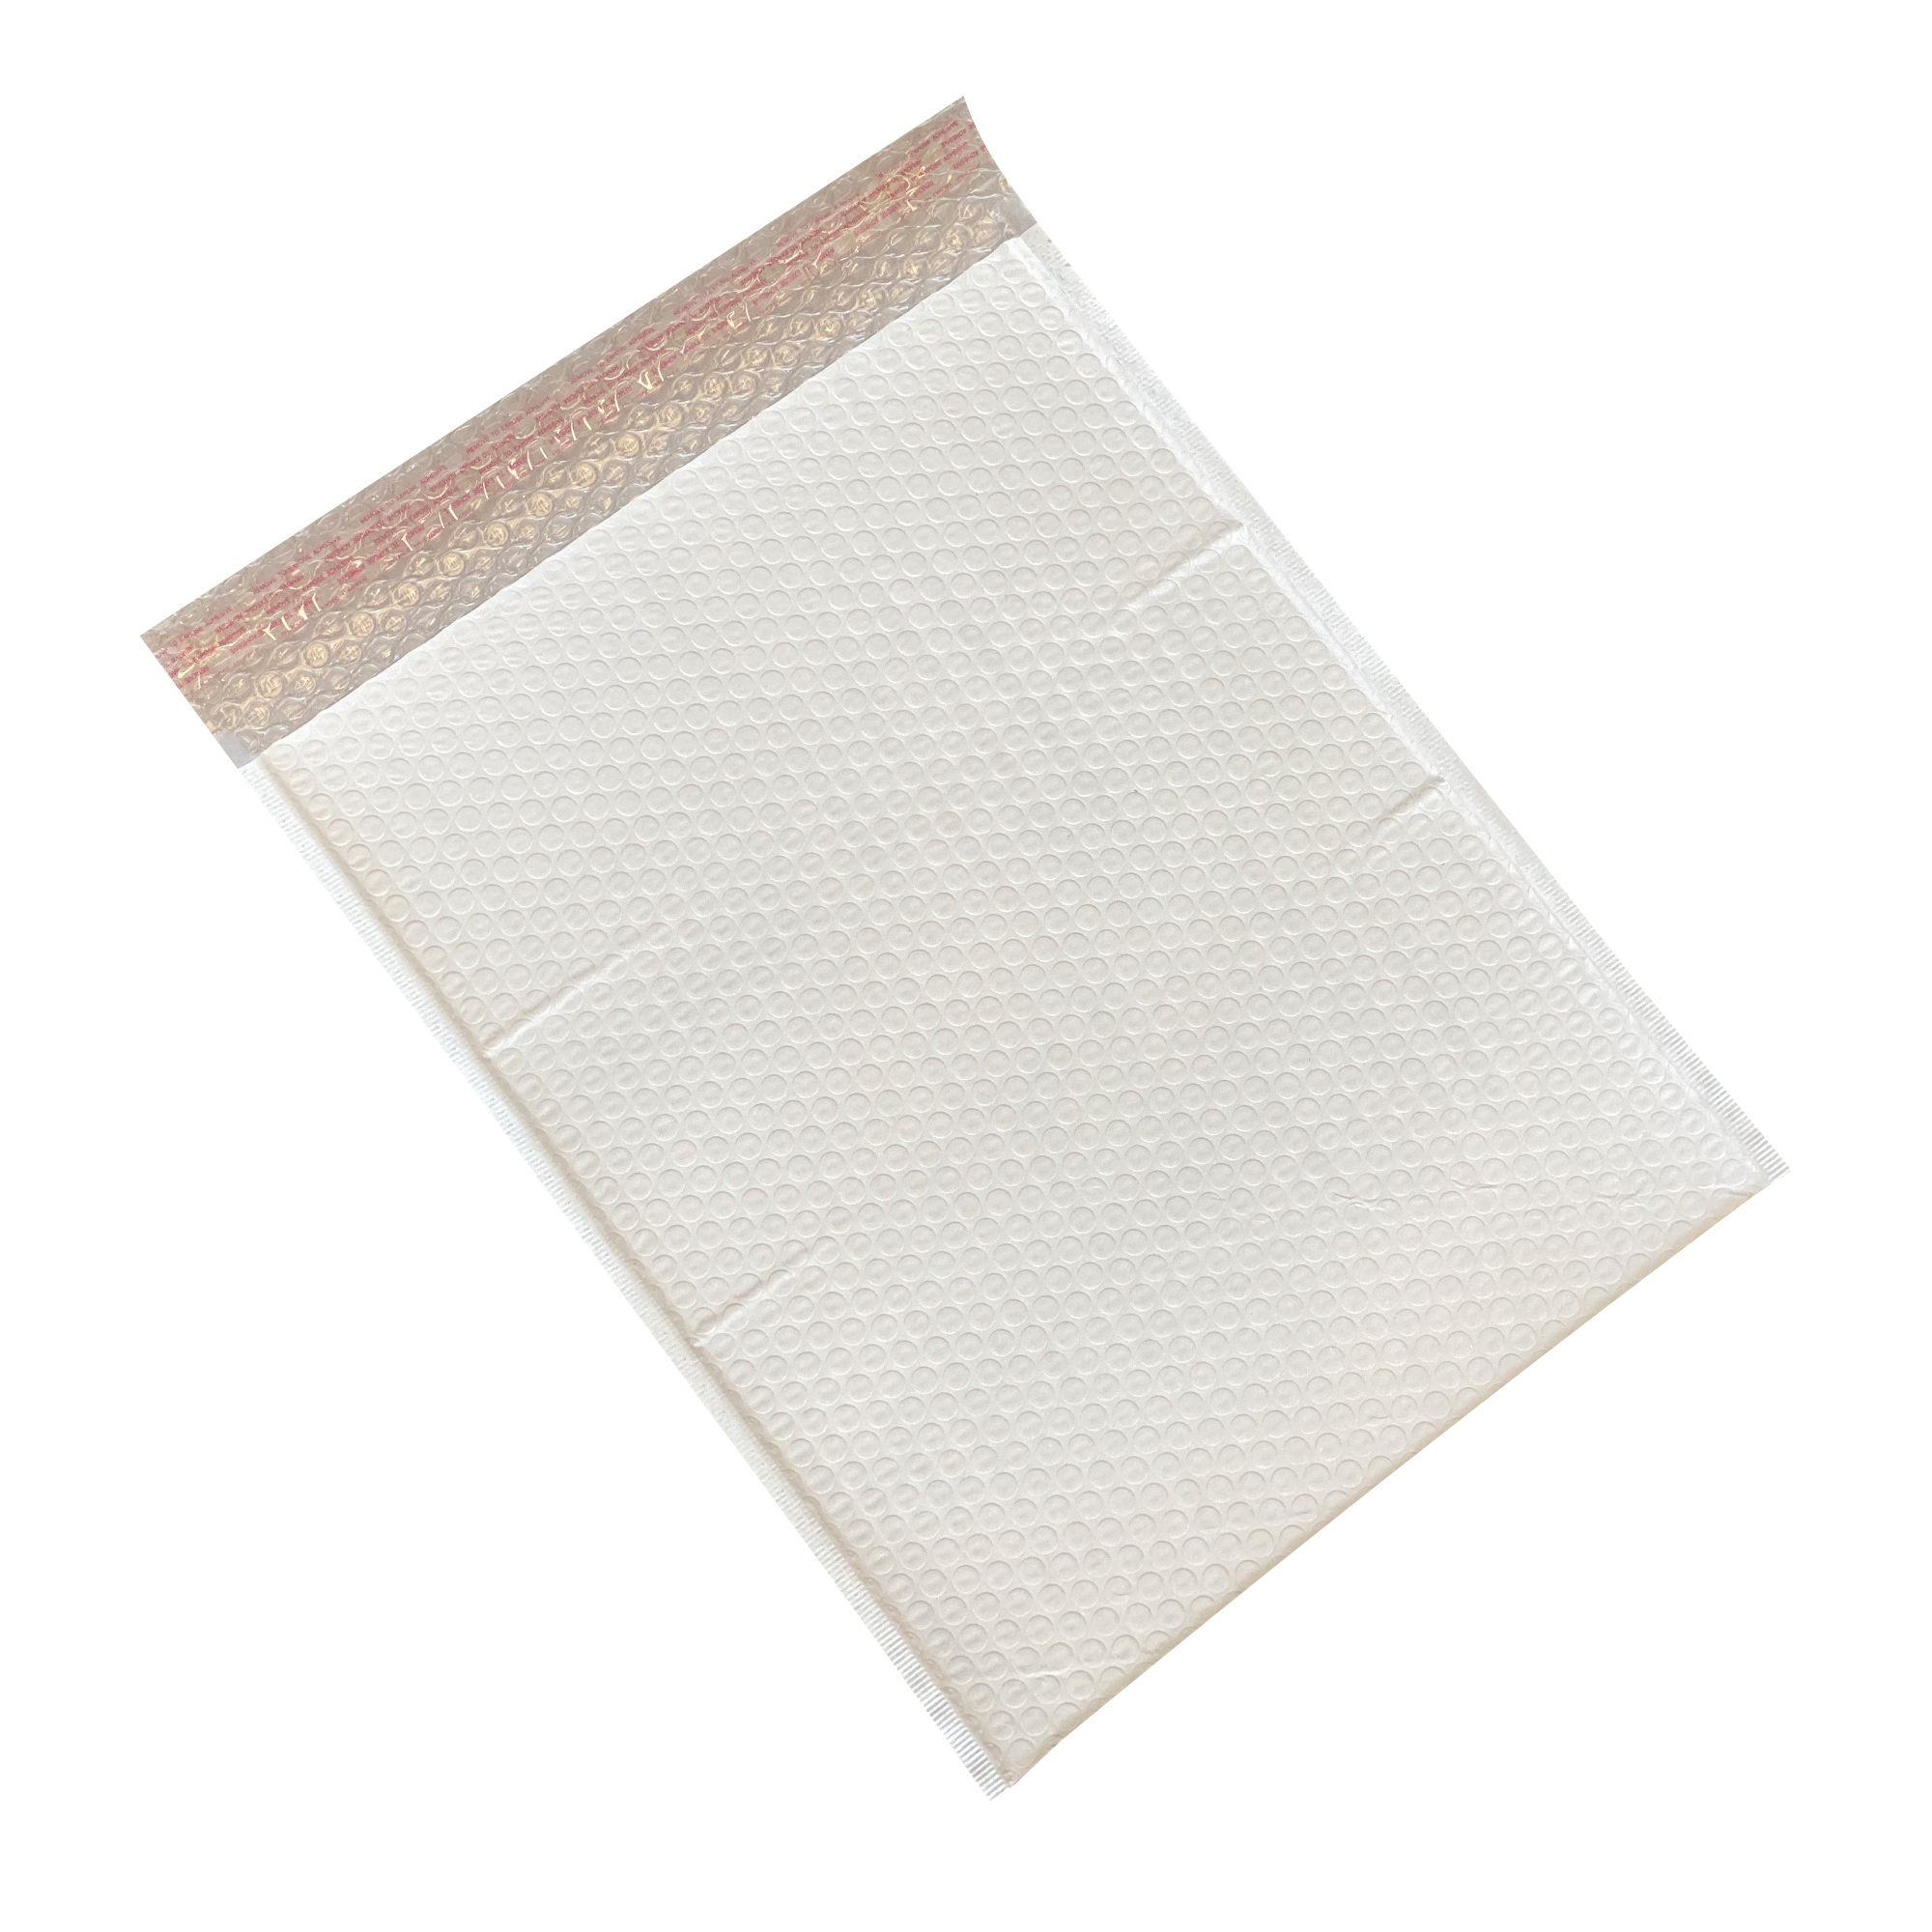 75pcs 360mm x 470mm Bubble Padded Mailer Envelope Plastic Lined